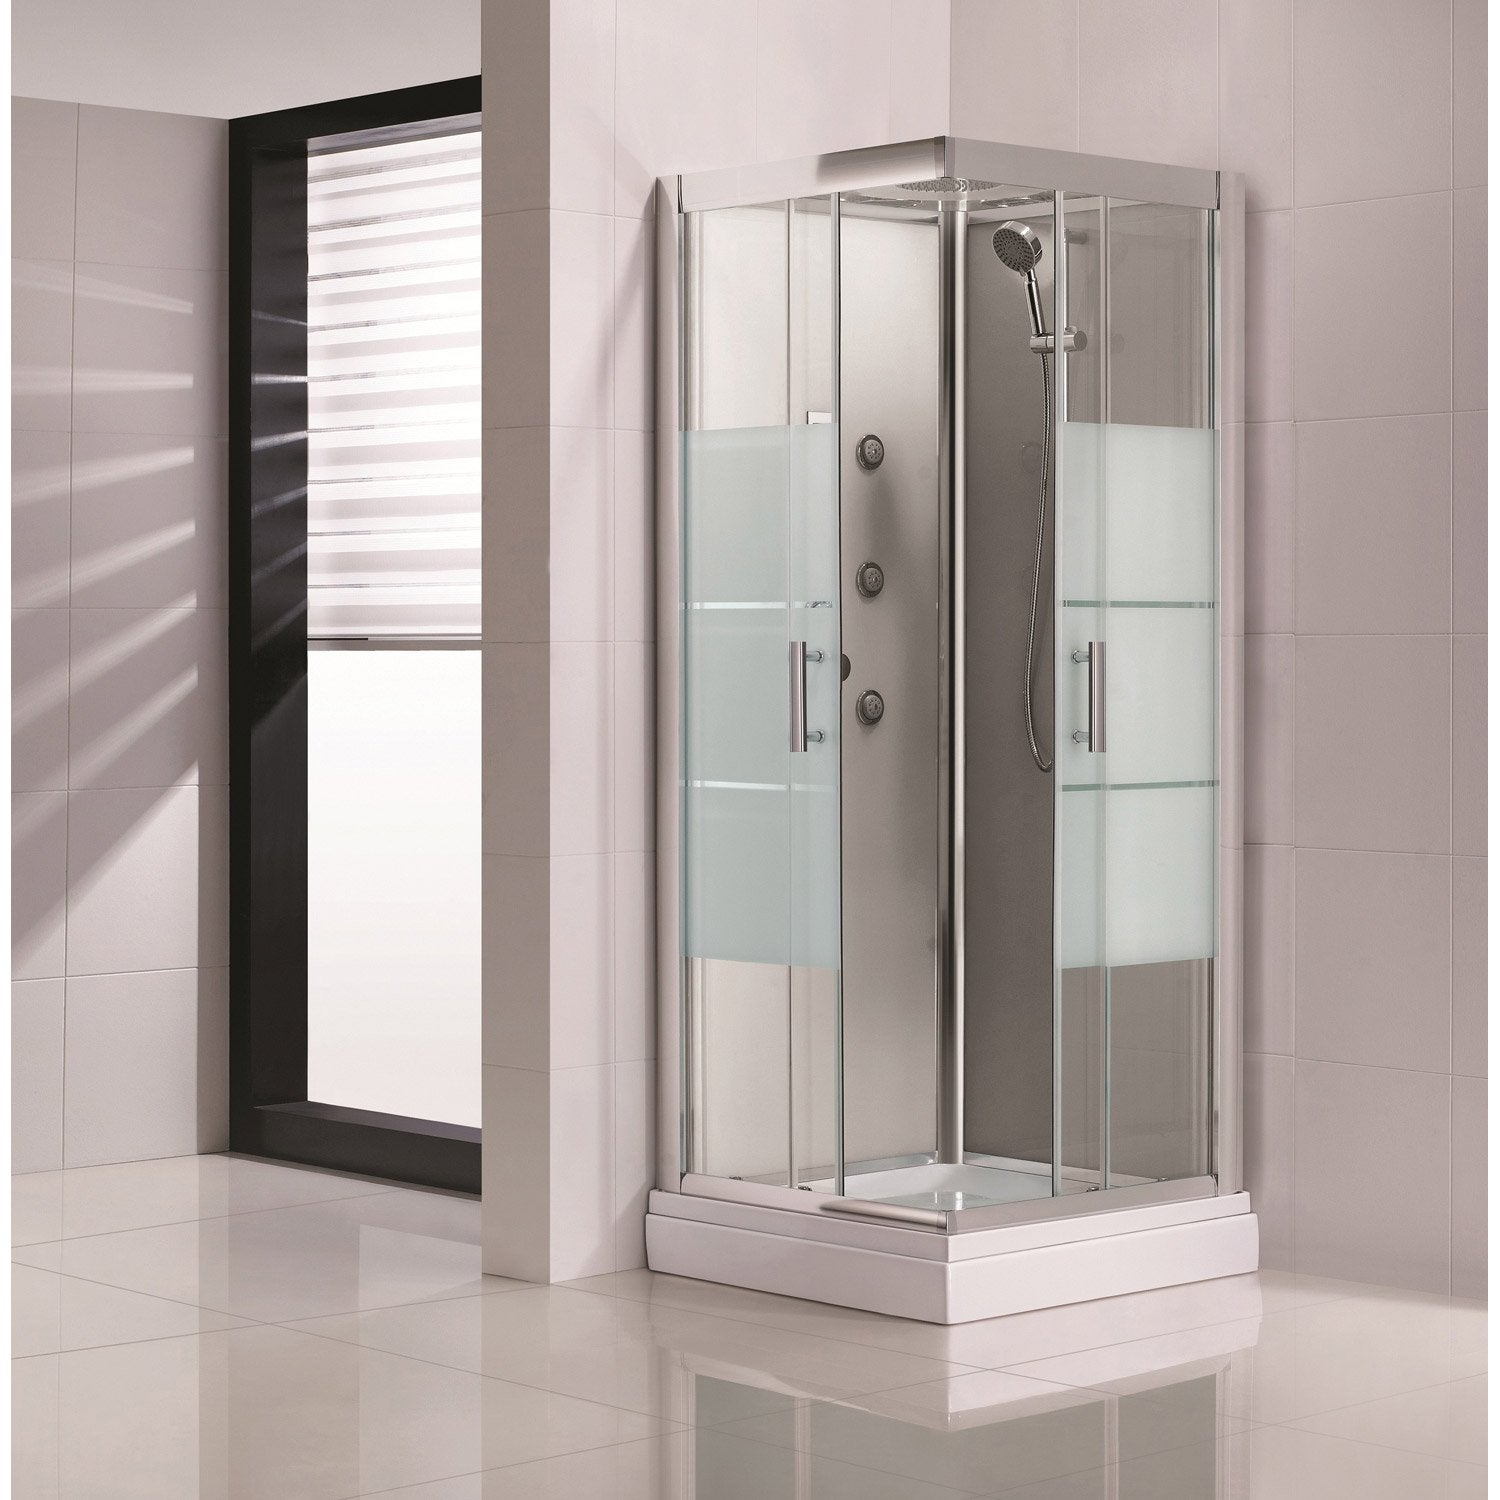 cabine de douche carr 80x80 cm optima2 grise leroy merlin. Black Bedroom Furniture Sets. Home Design Ideas